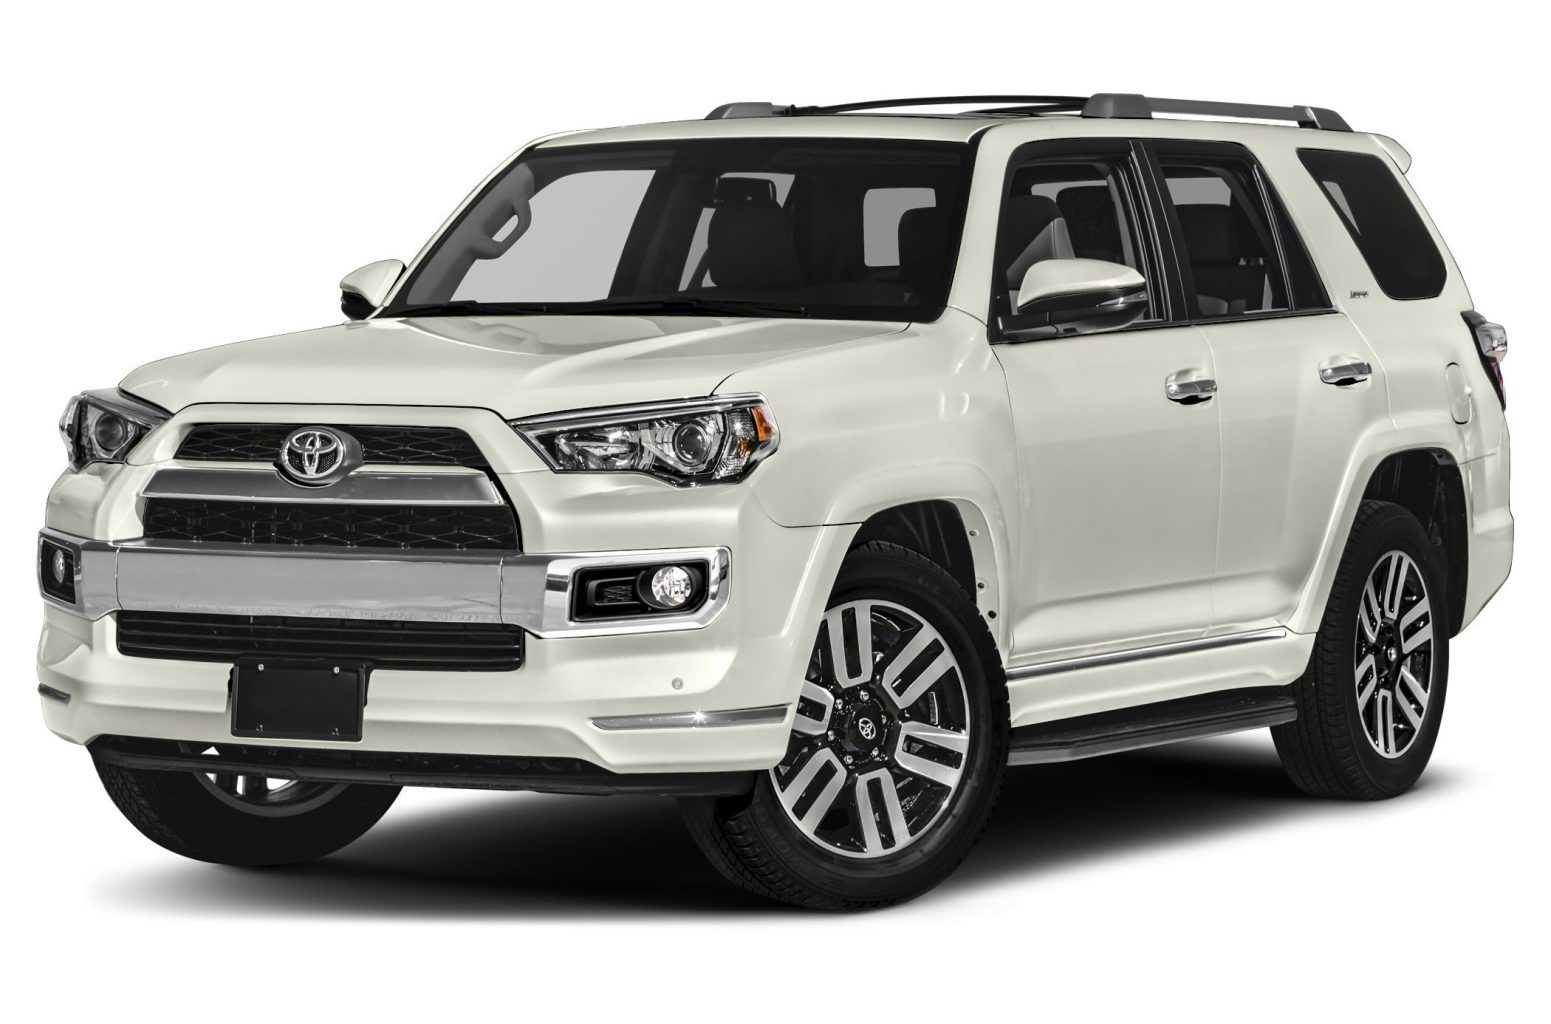 In 2020 The Fifth Generation Toyota 4runner Will Enter Its 11th Model Year Making It Among The Earliest Suv Toyota 4runner Toyota 4runner Trd 4runner Limited